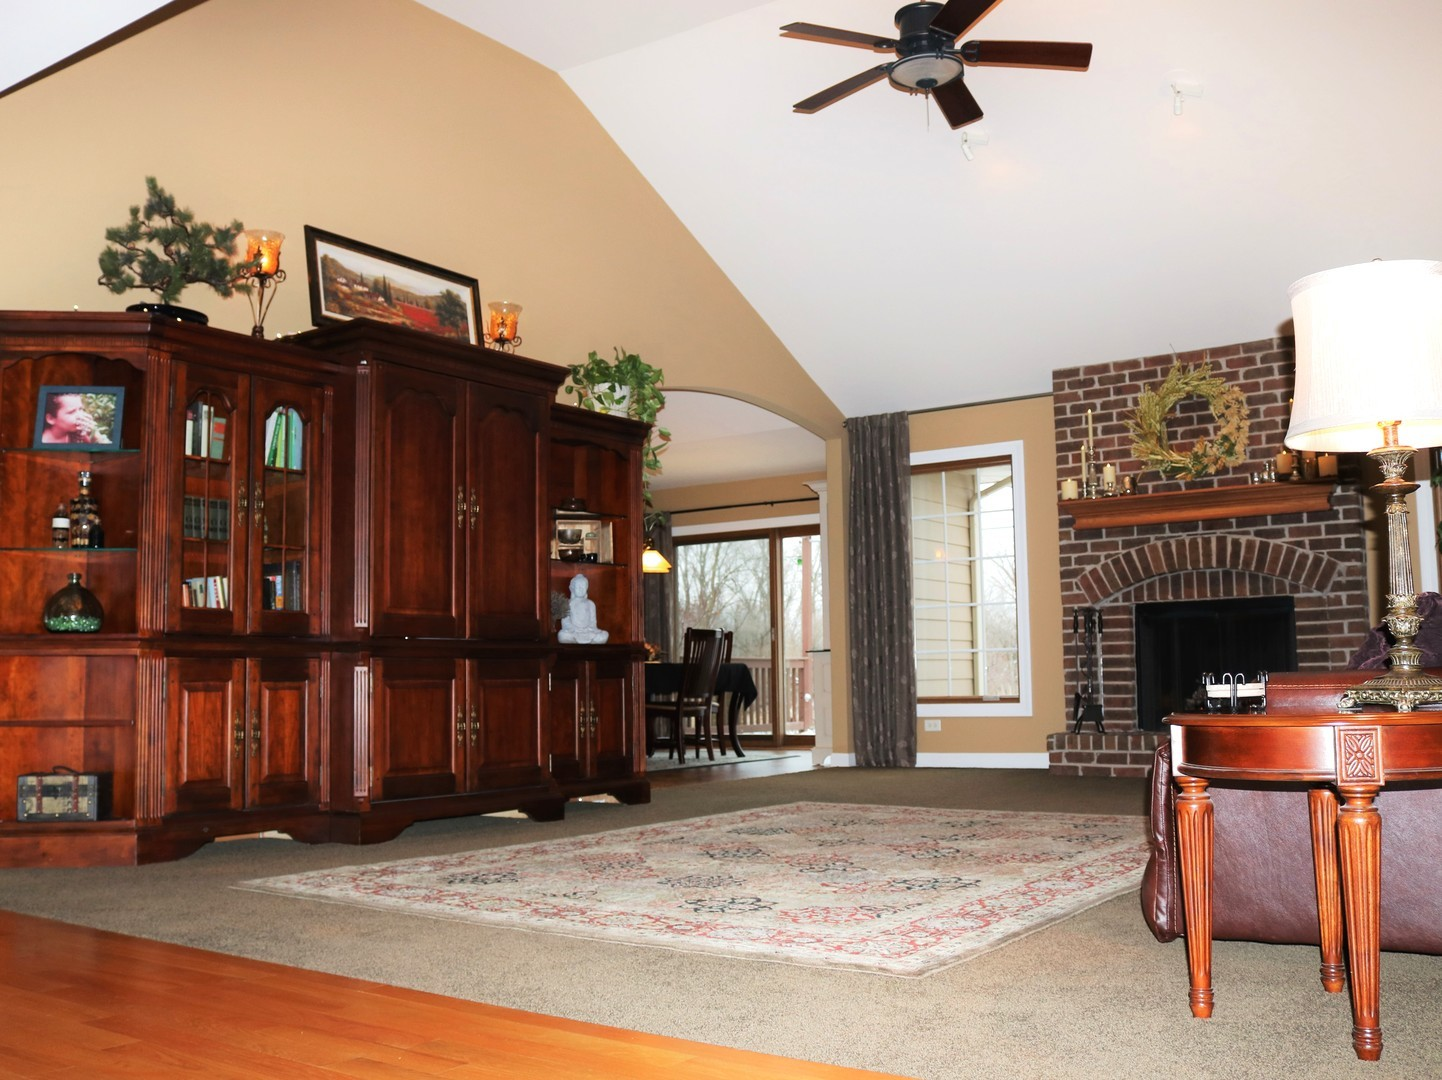 26341 West Old Kerry Grove, Channahon, Illinois, 60410